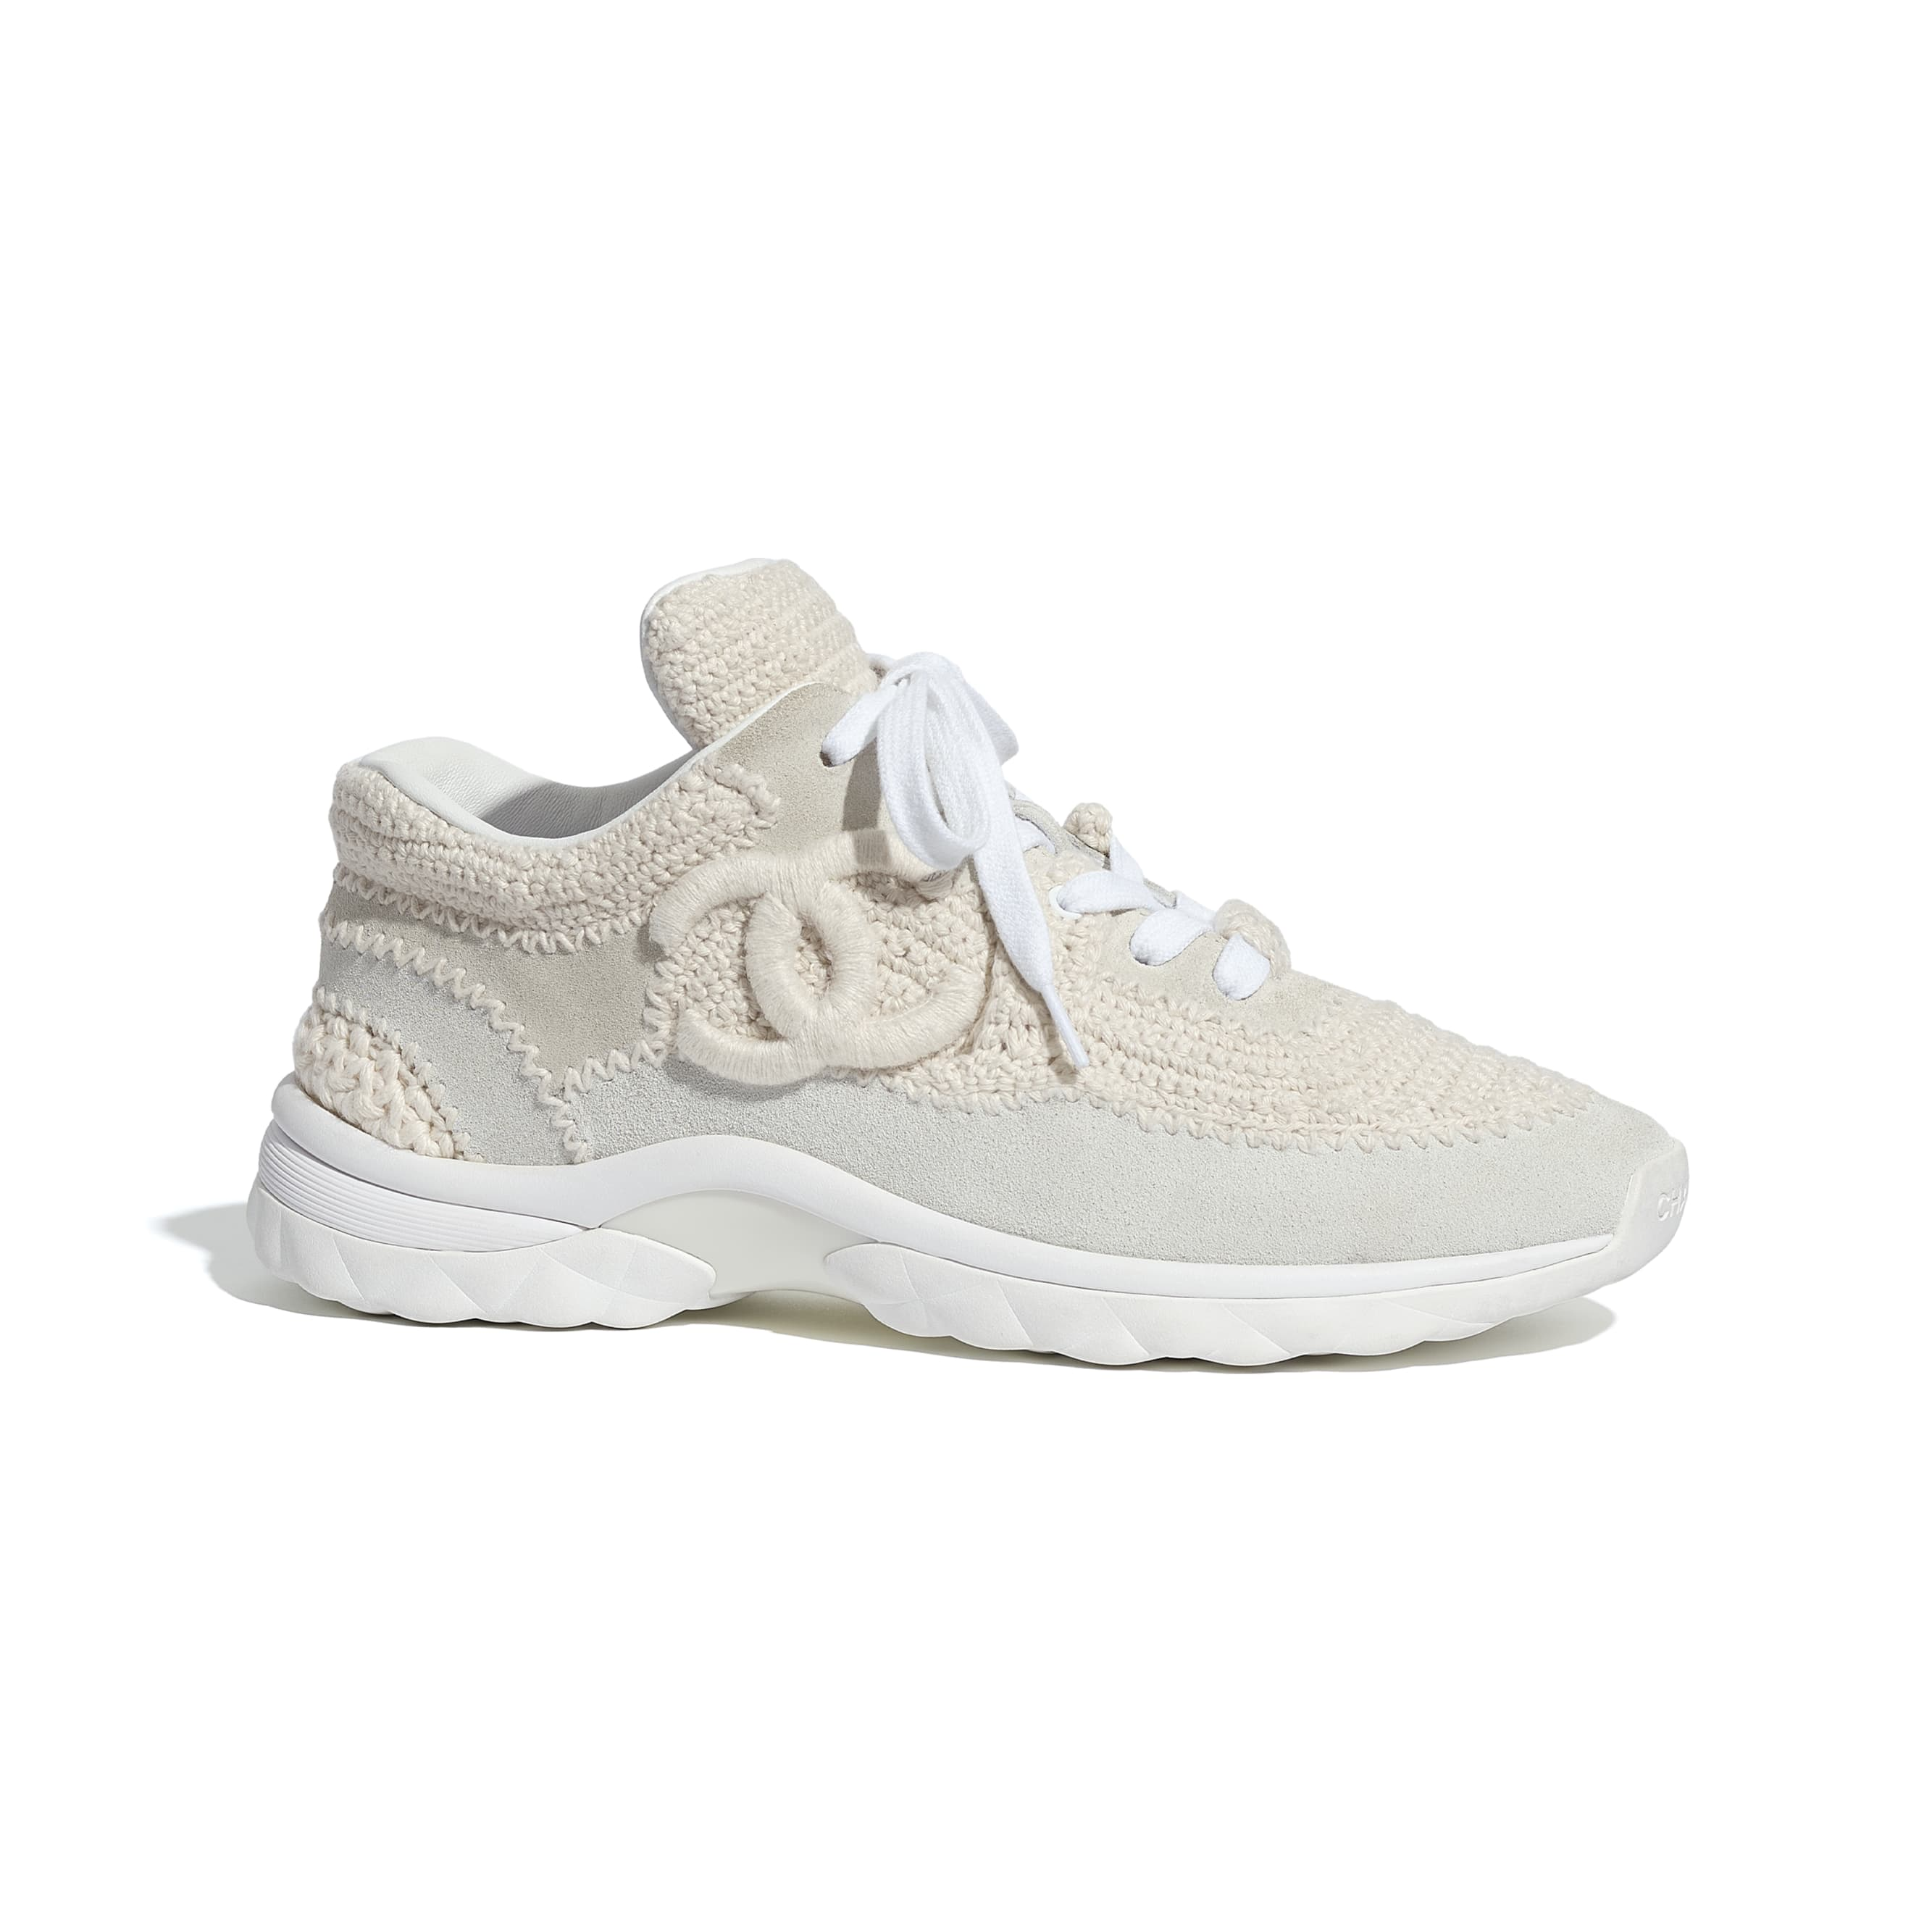 Trainers - Ivory - CHANEL - Default view - see standard sized version